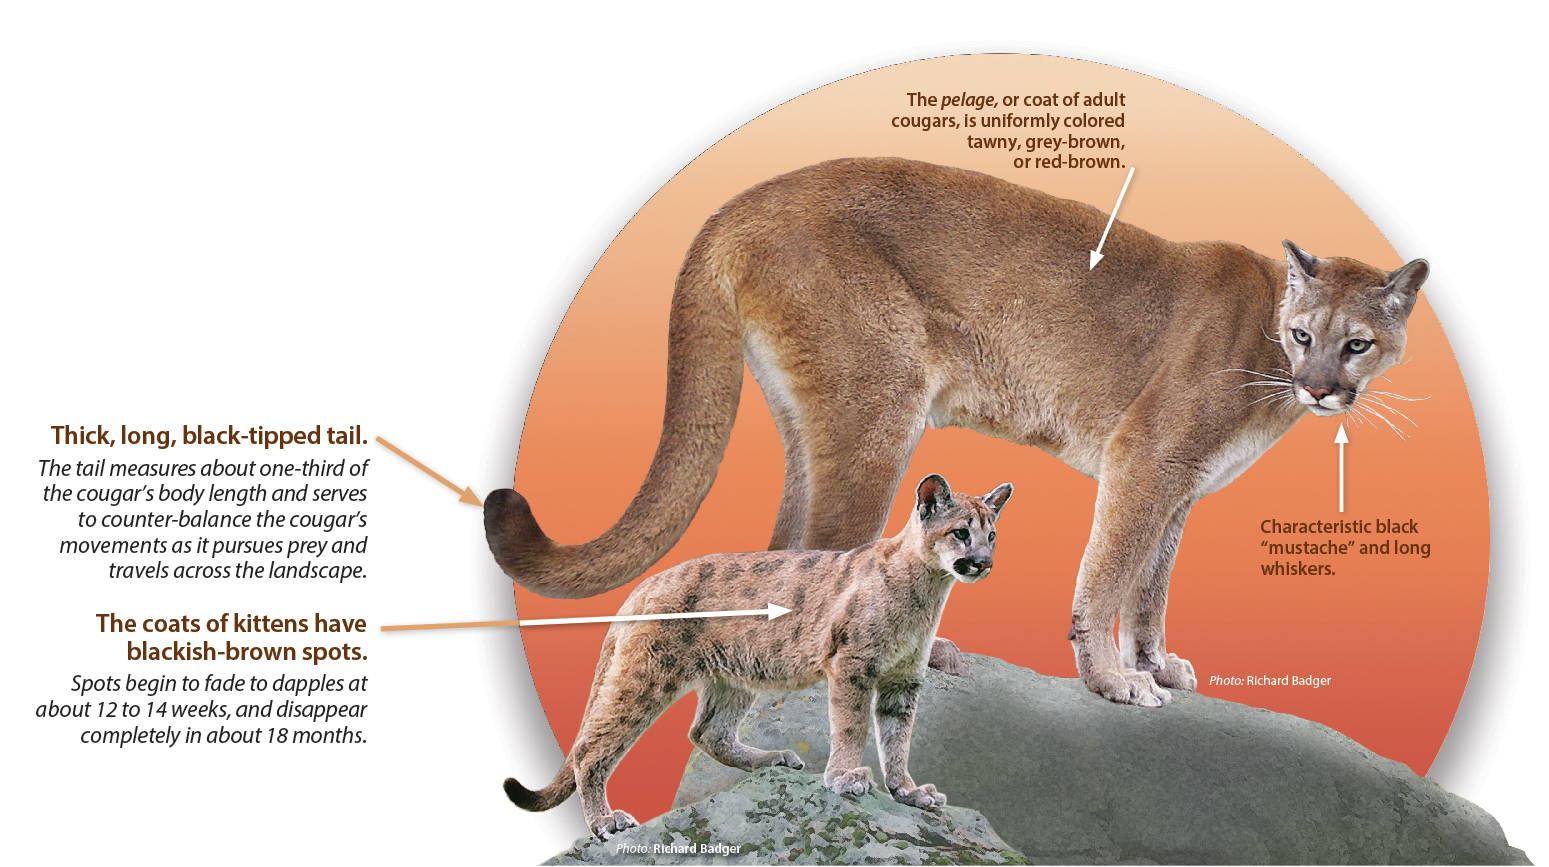 Cougar Cat Diagram Reveolution Of Wiring Heat Identification Western Wildlife Outreach Rh Westernwildlife Org 1999 Water Pump Hose 2001 Mercury Sable Engine